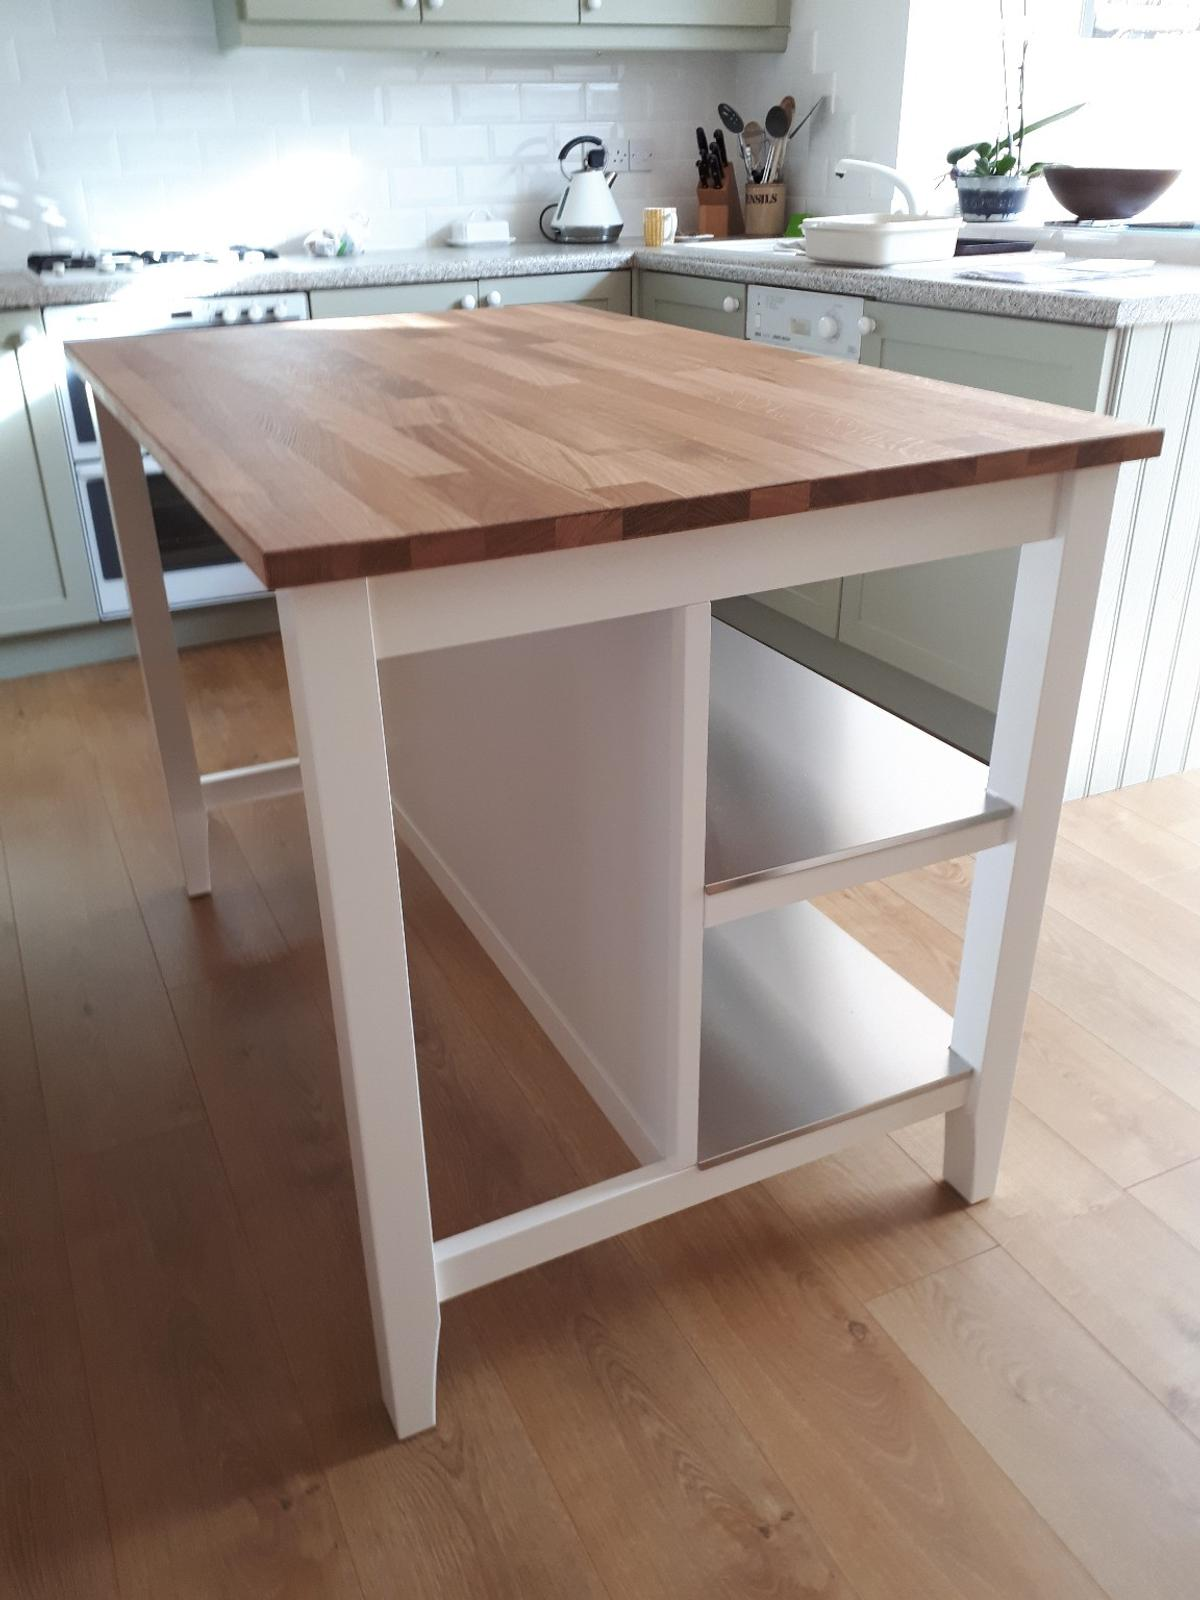 ikea kitchen island ikea stenstorp kitchen island in ch63 wirral for 163 200 00 for sale shpock 2296